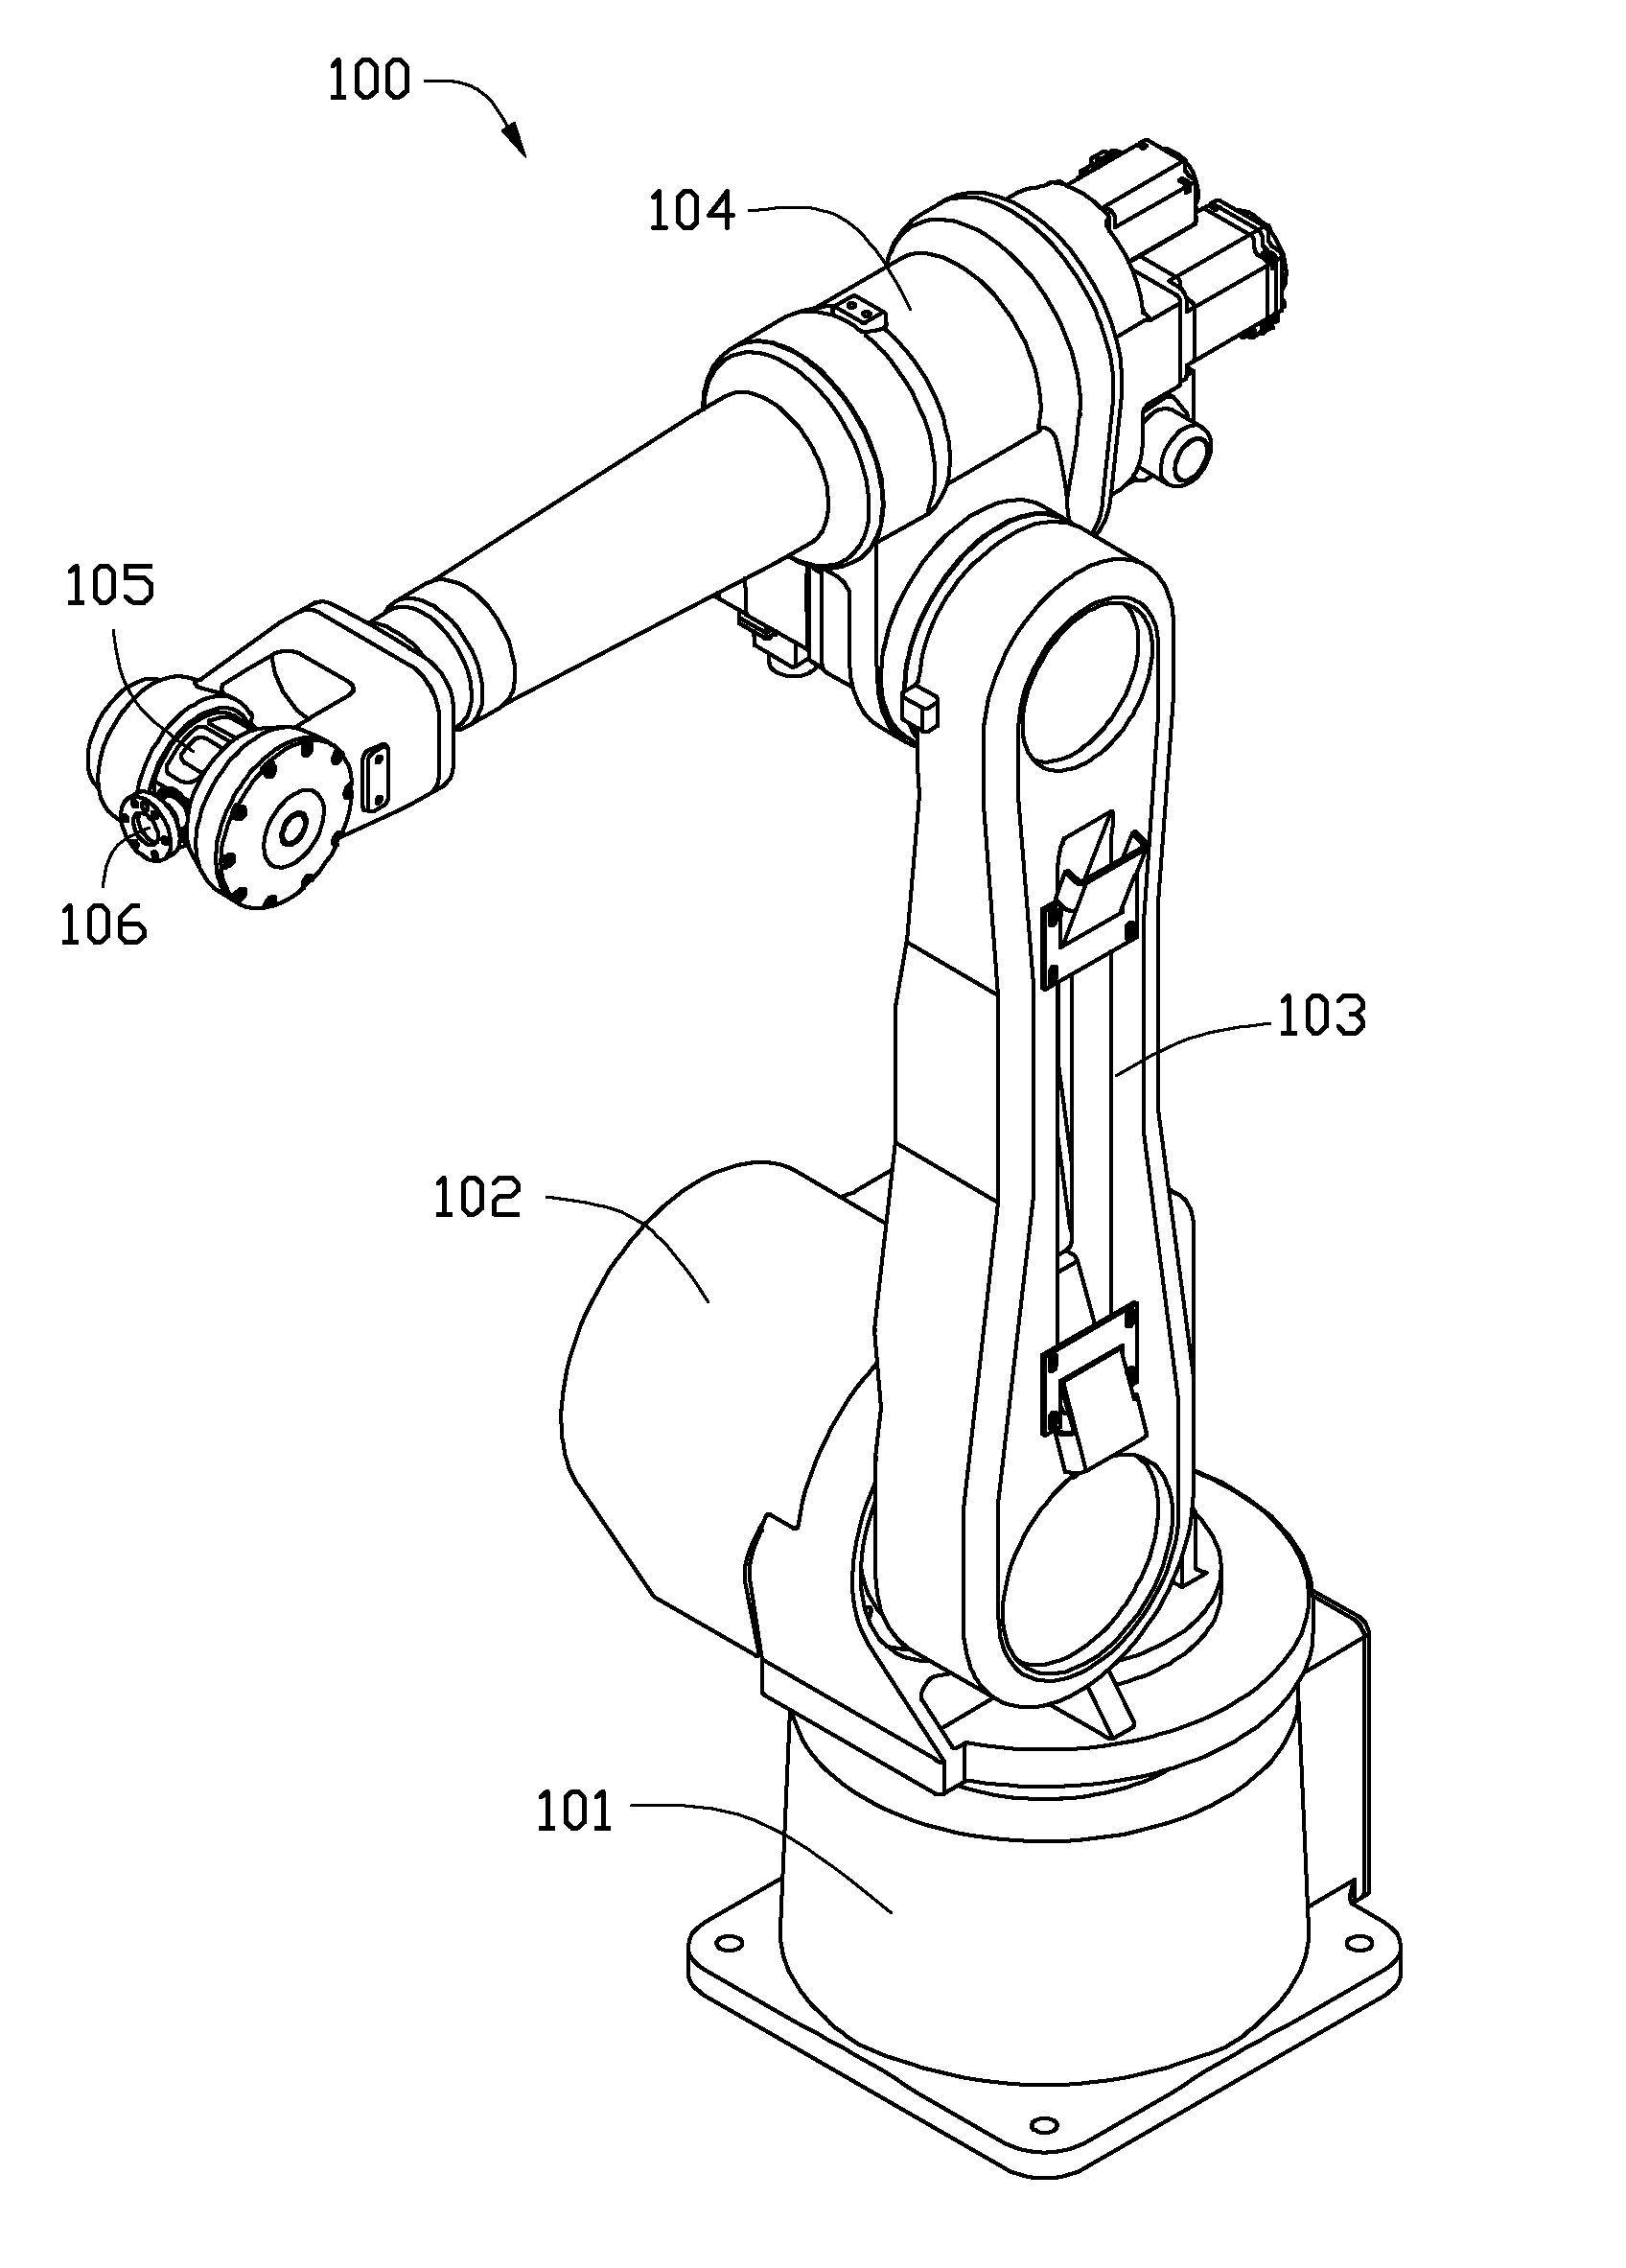 patent us20110113916 - arm assembly and robot using the same